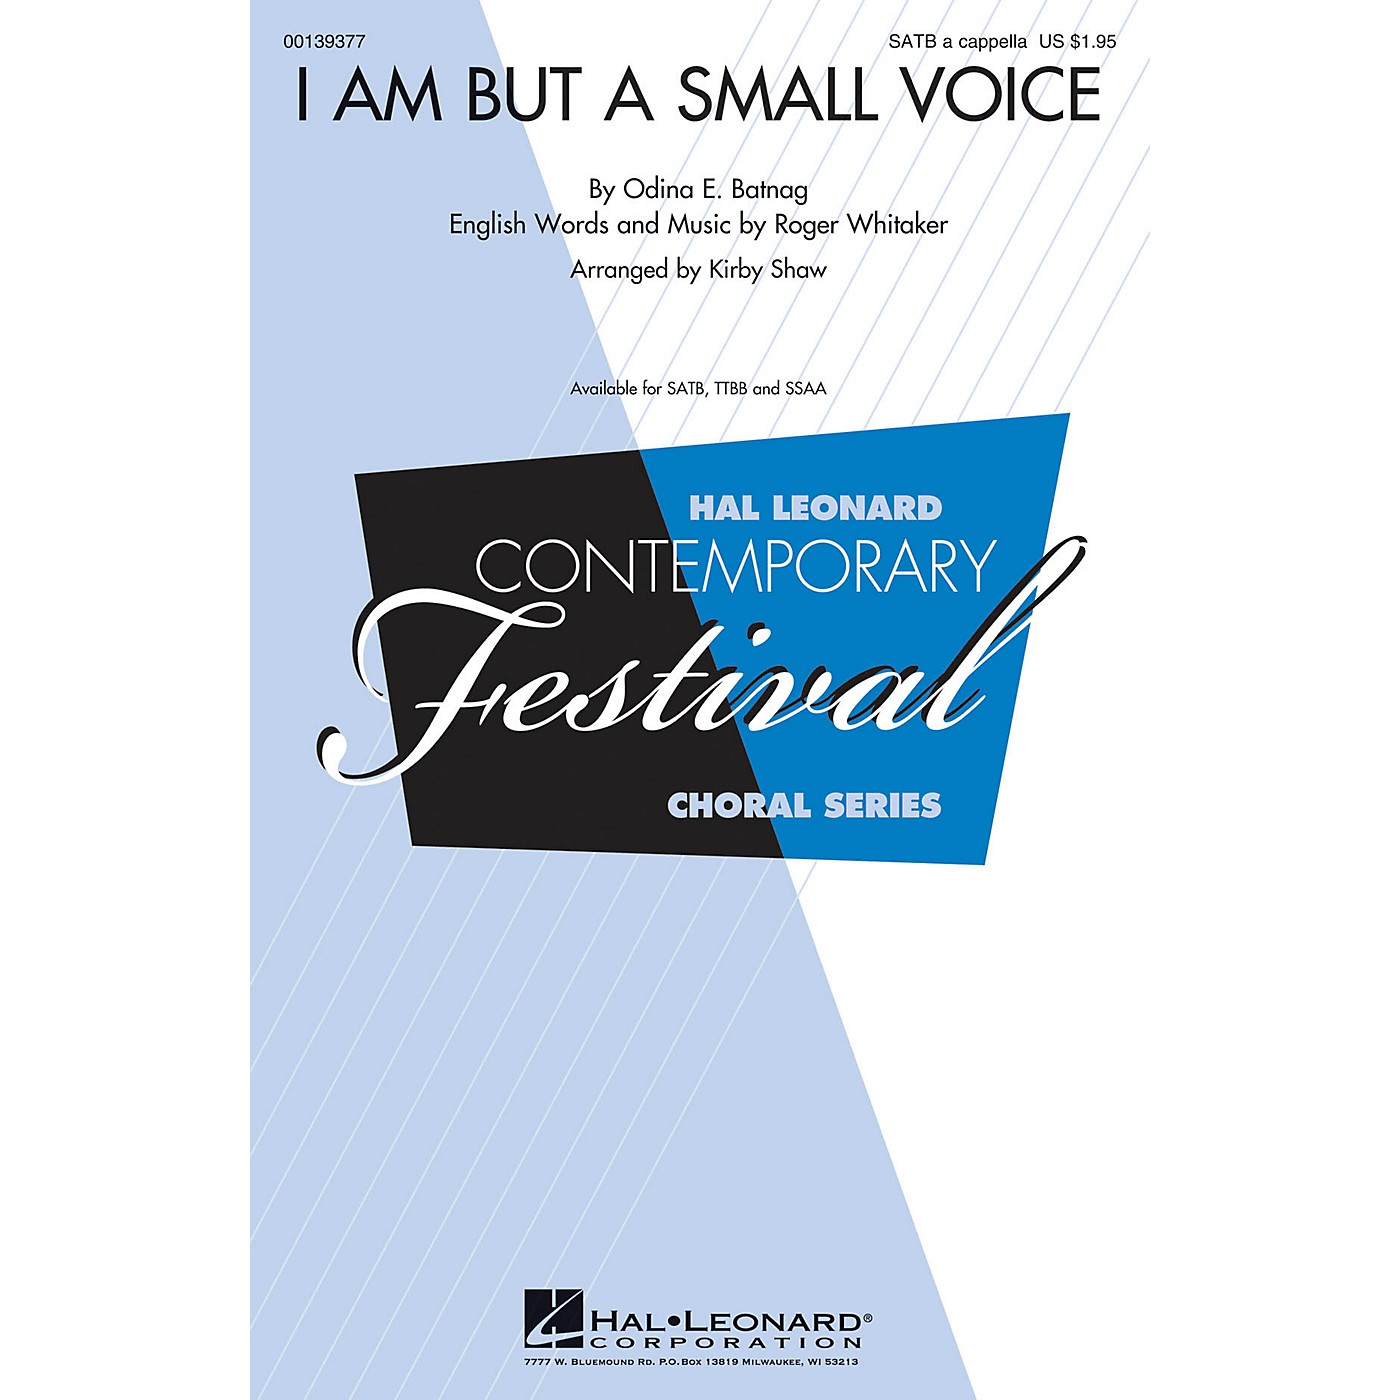 Hal Leonard I Am But a Small Voice SATB a cappella arranged by Kirby Shaw thumbnail